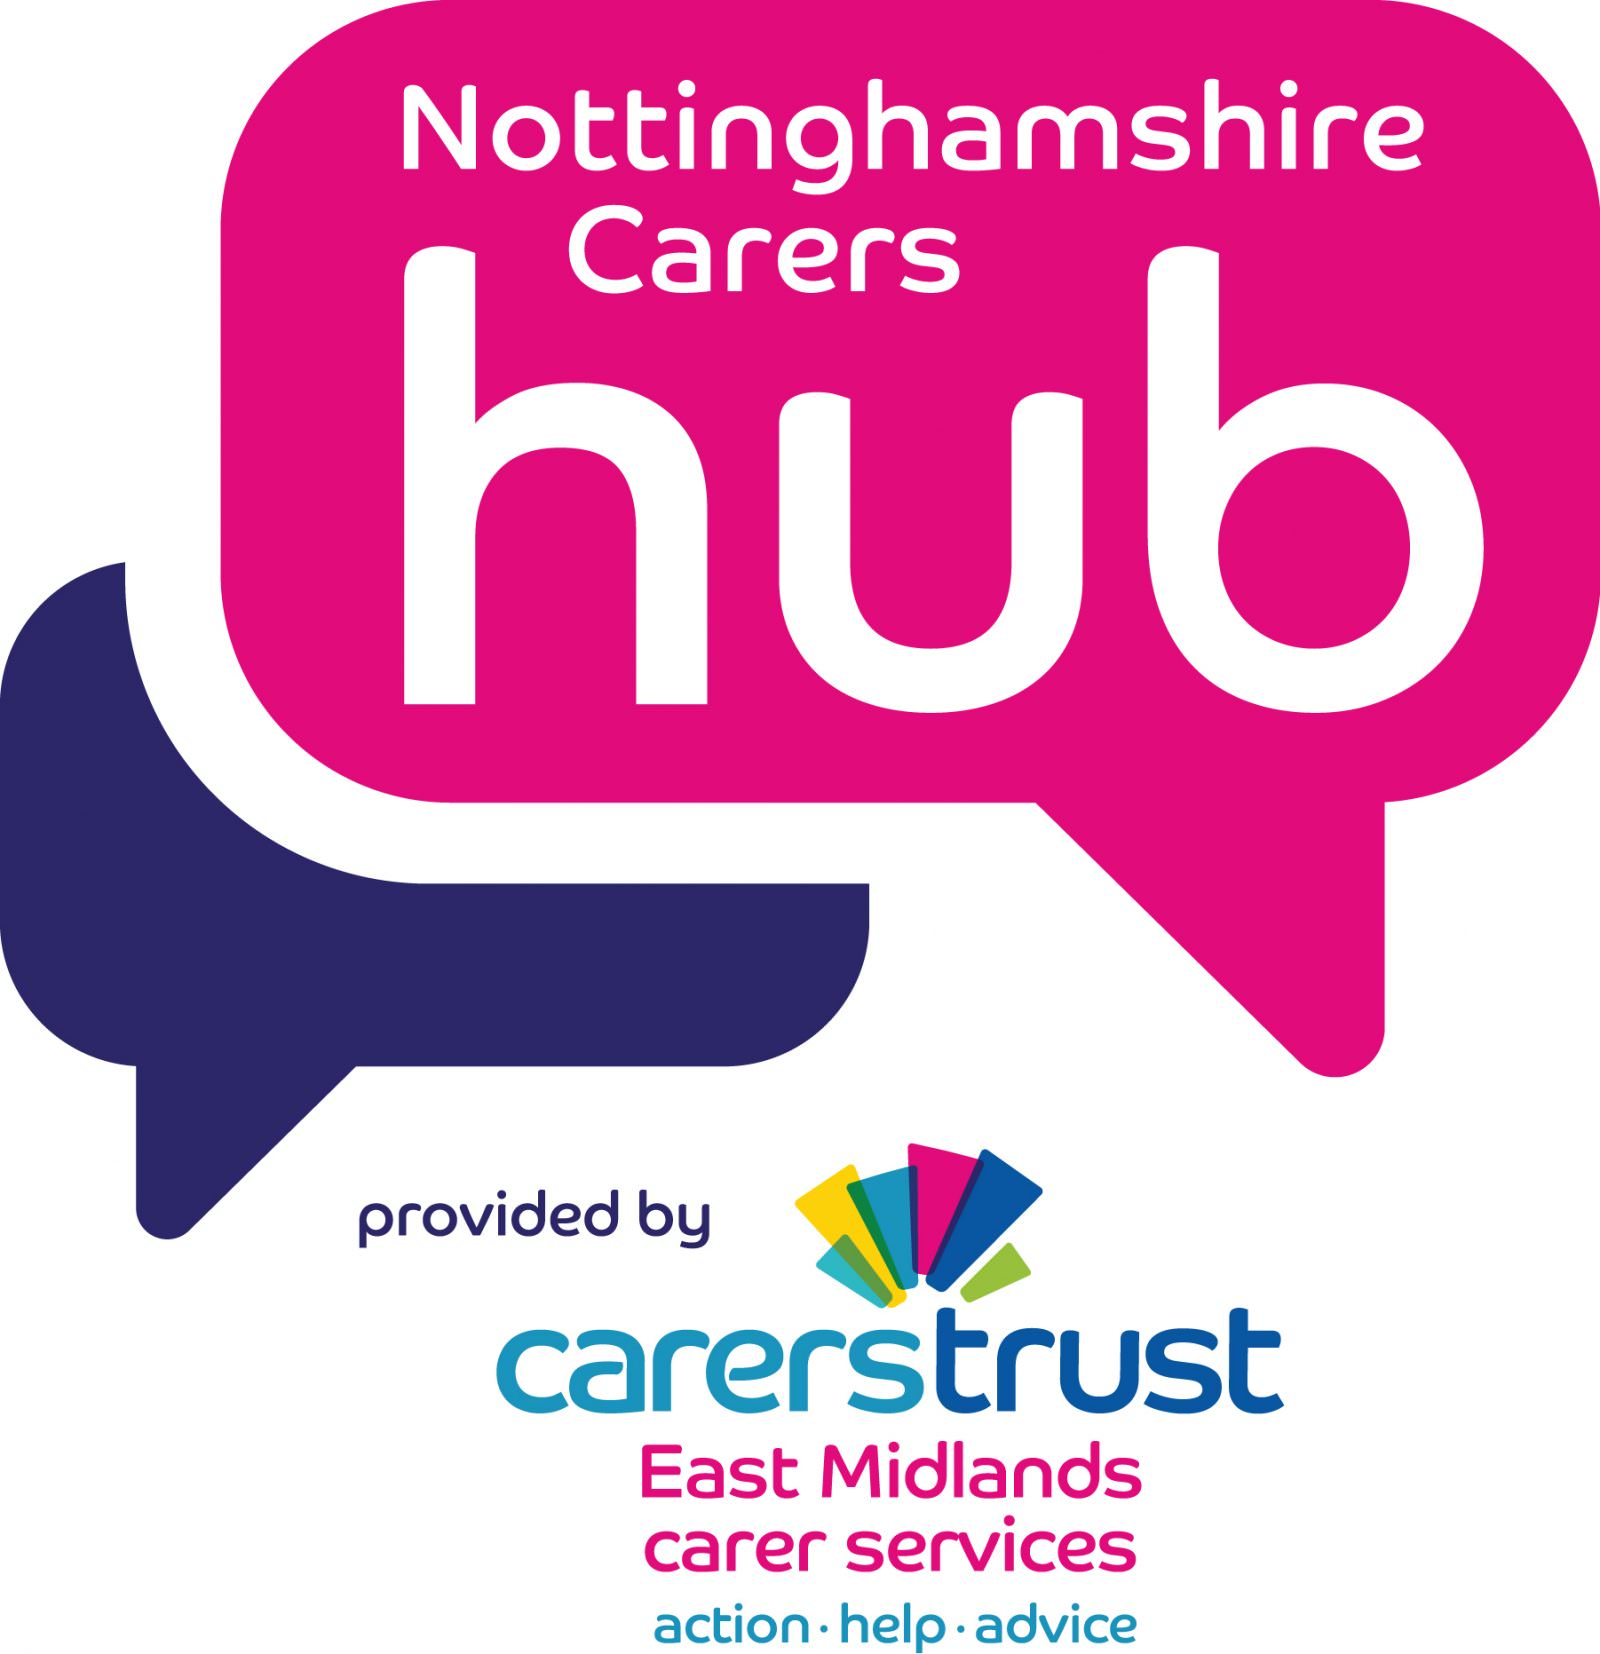 nottingham-carers-hub-logo_artwork